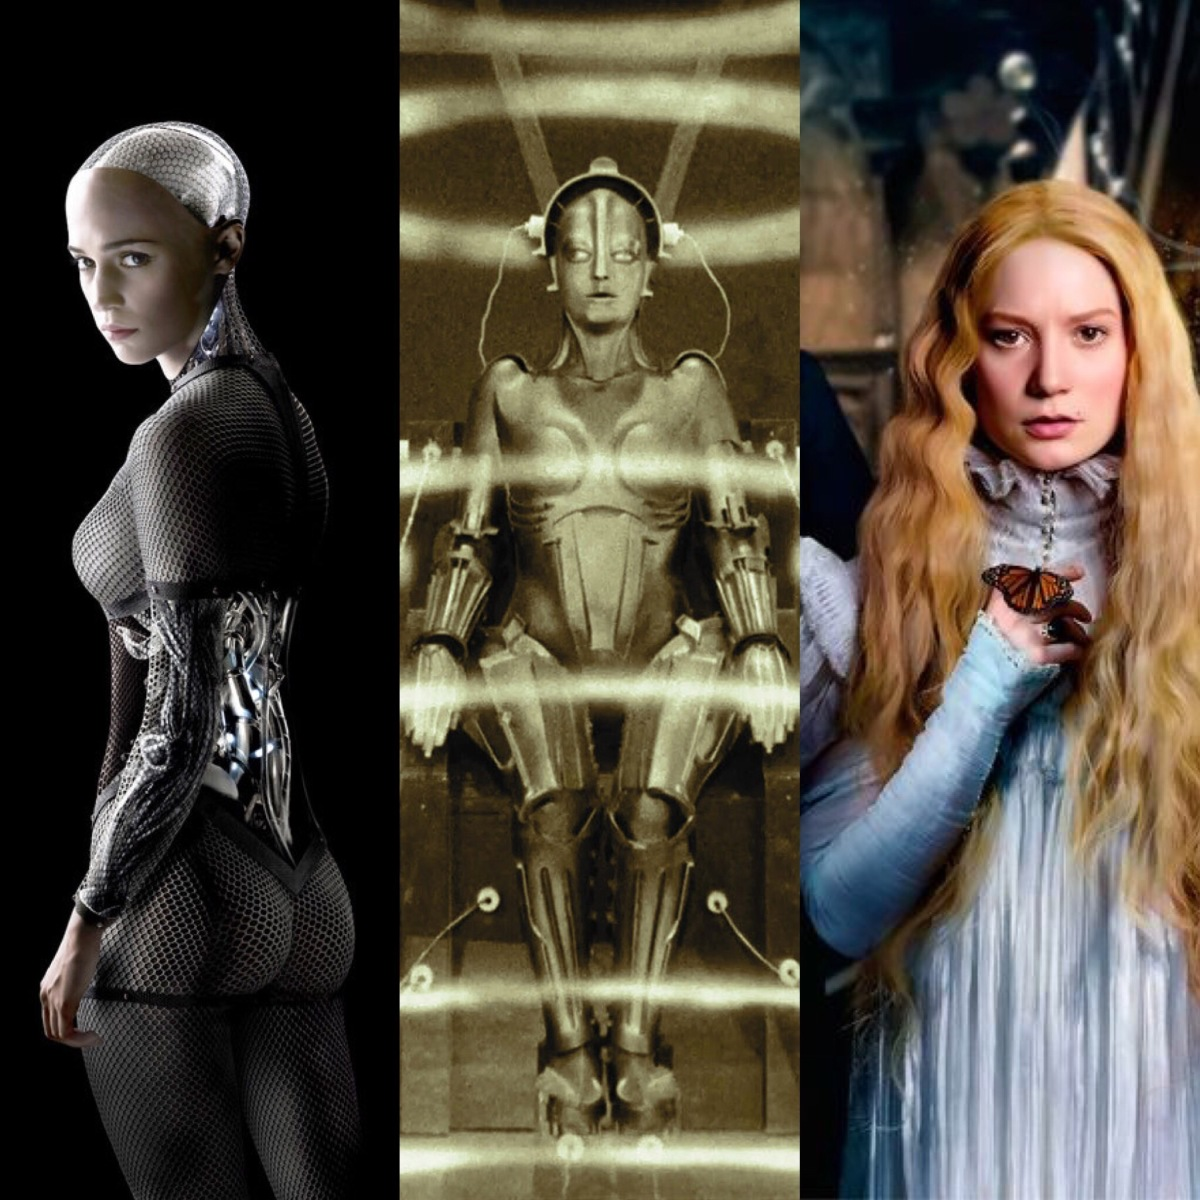 Feminine horror and Ex Machina